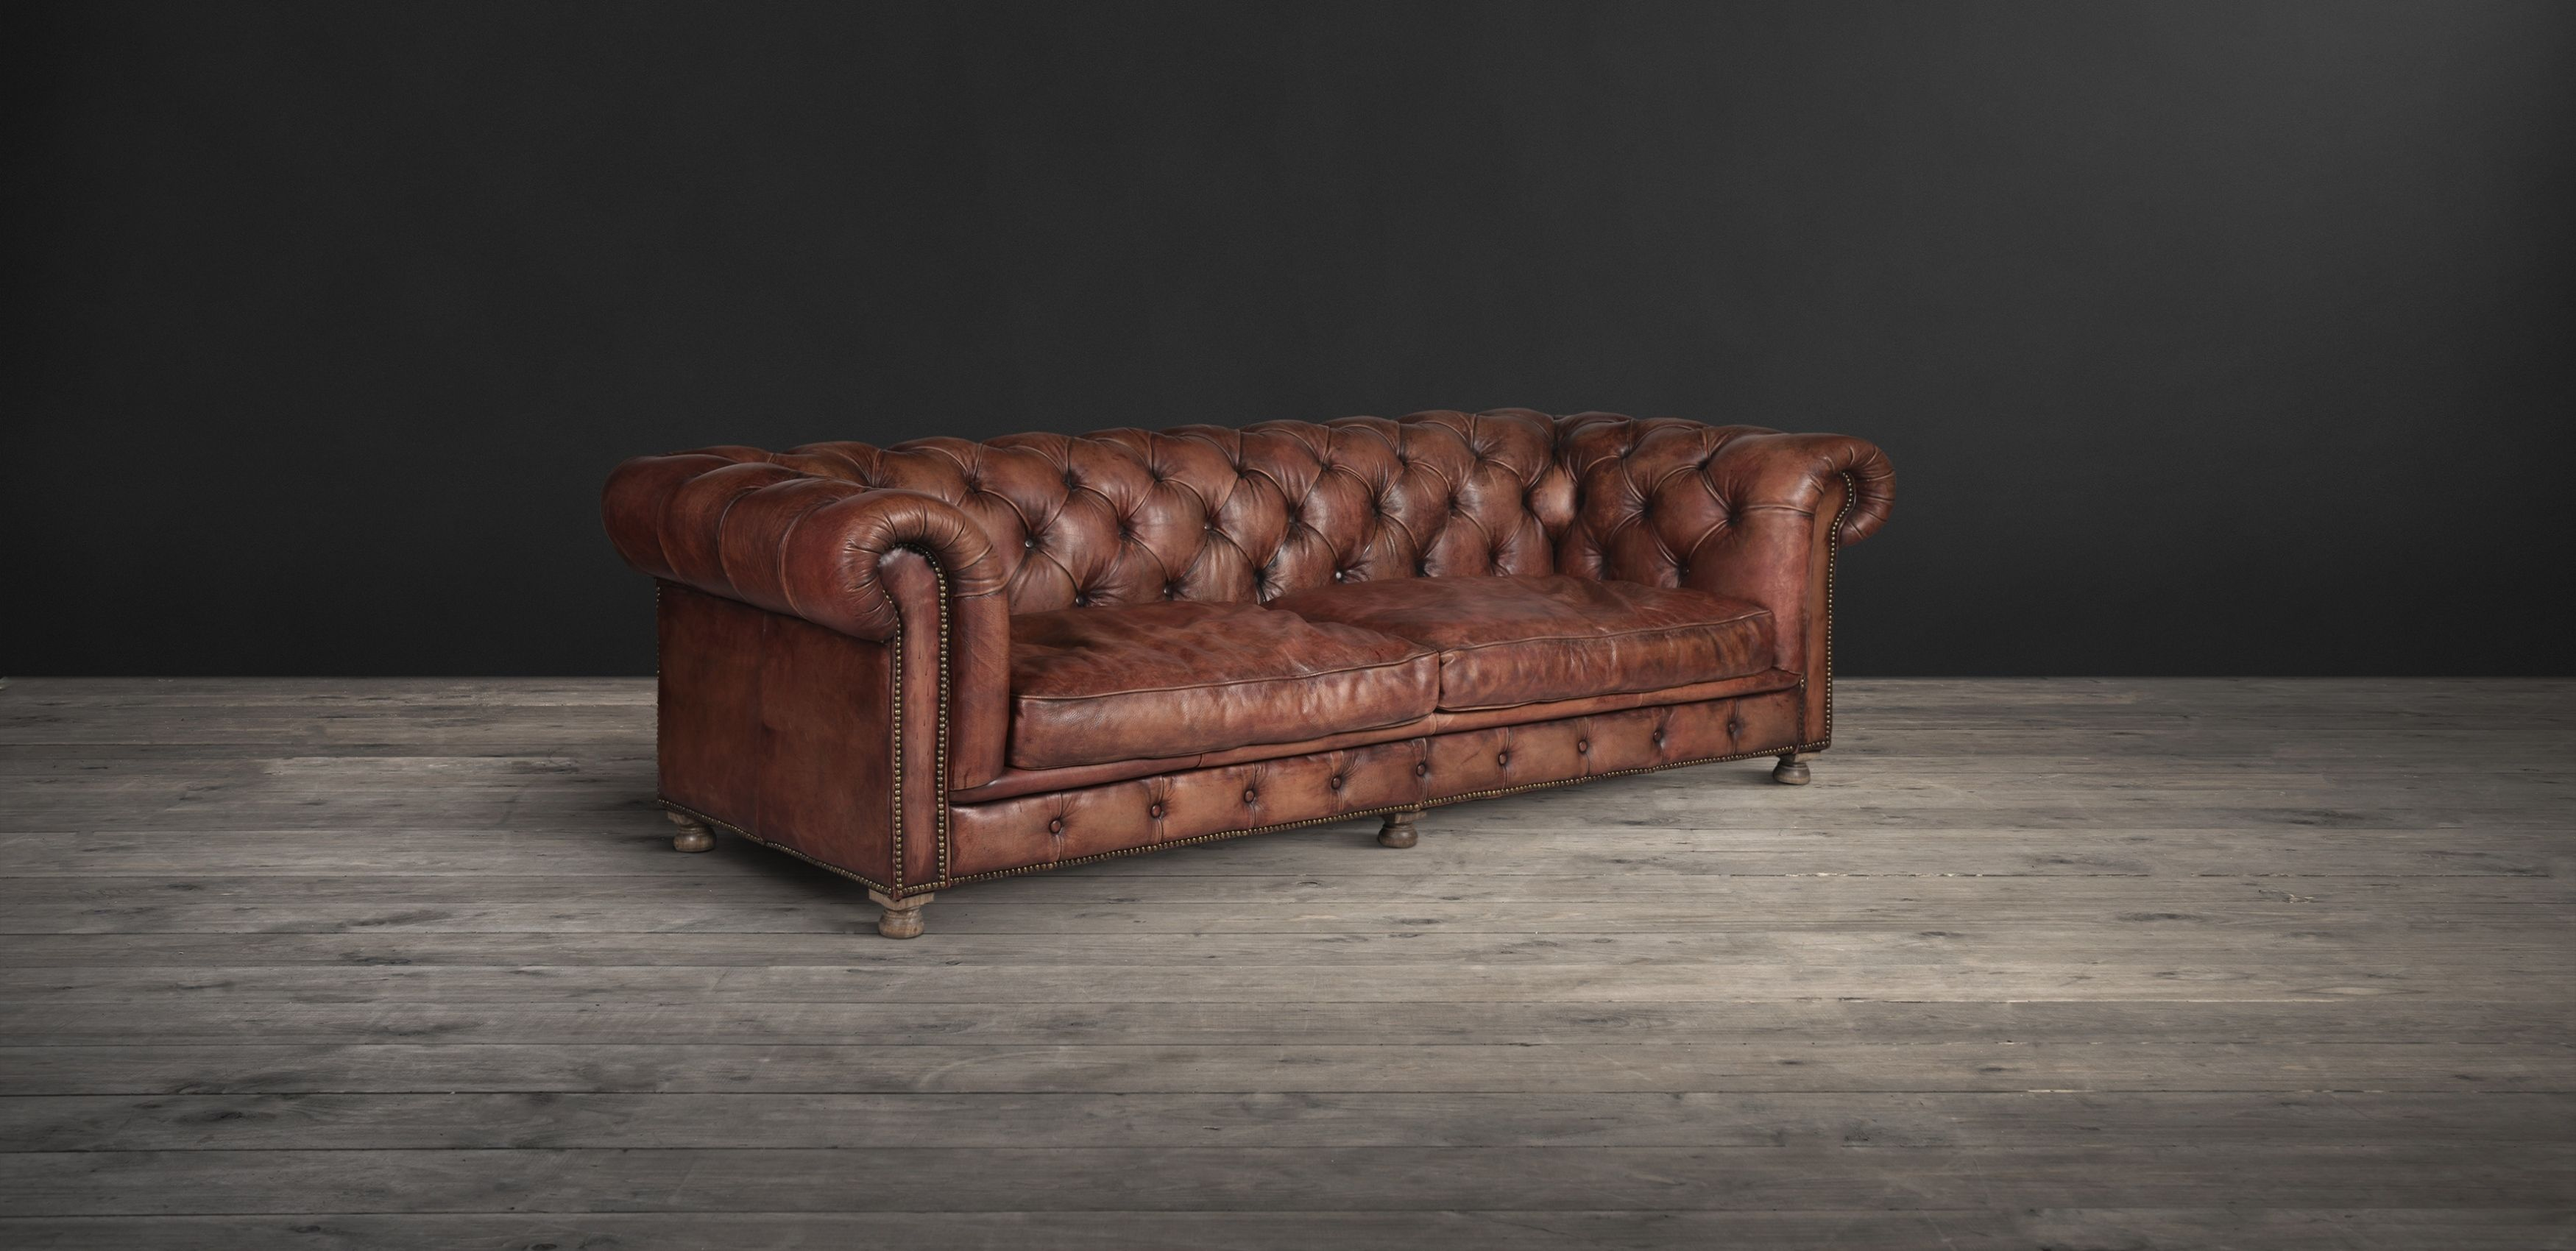 The Chesterfield Inspired Westminster Feather Sofa In Warm Vintage